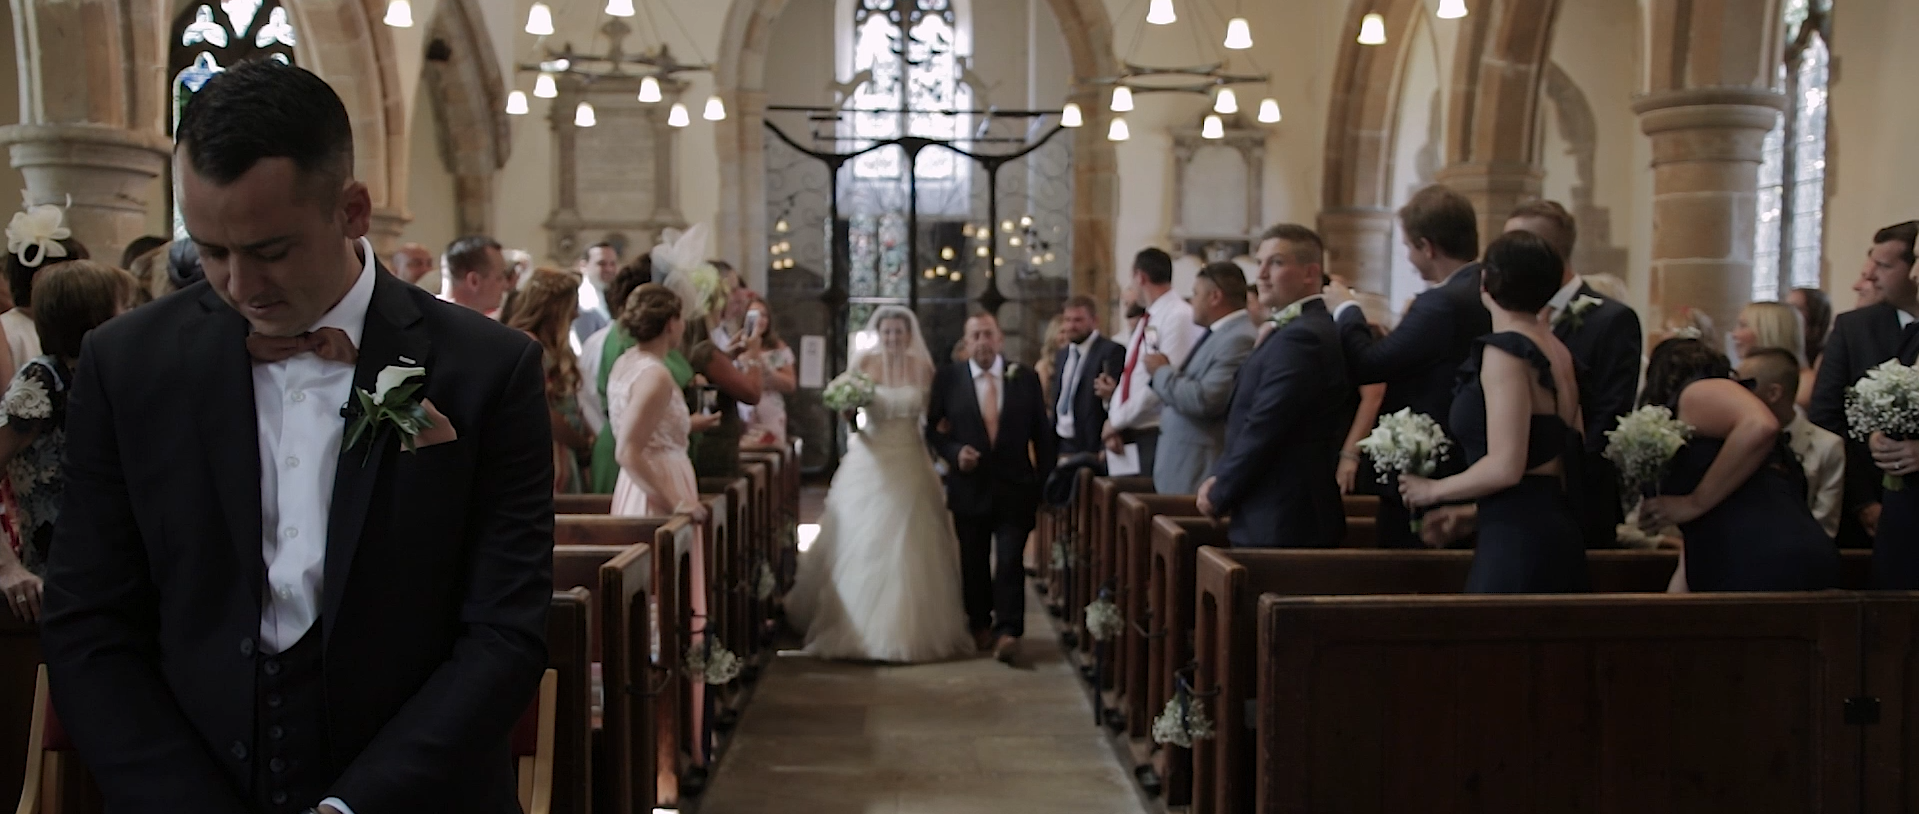 wedding video USB